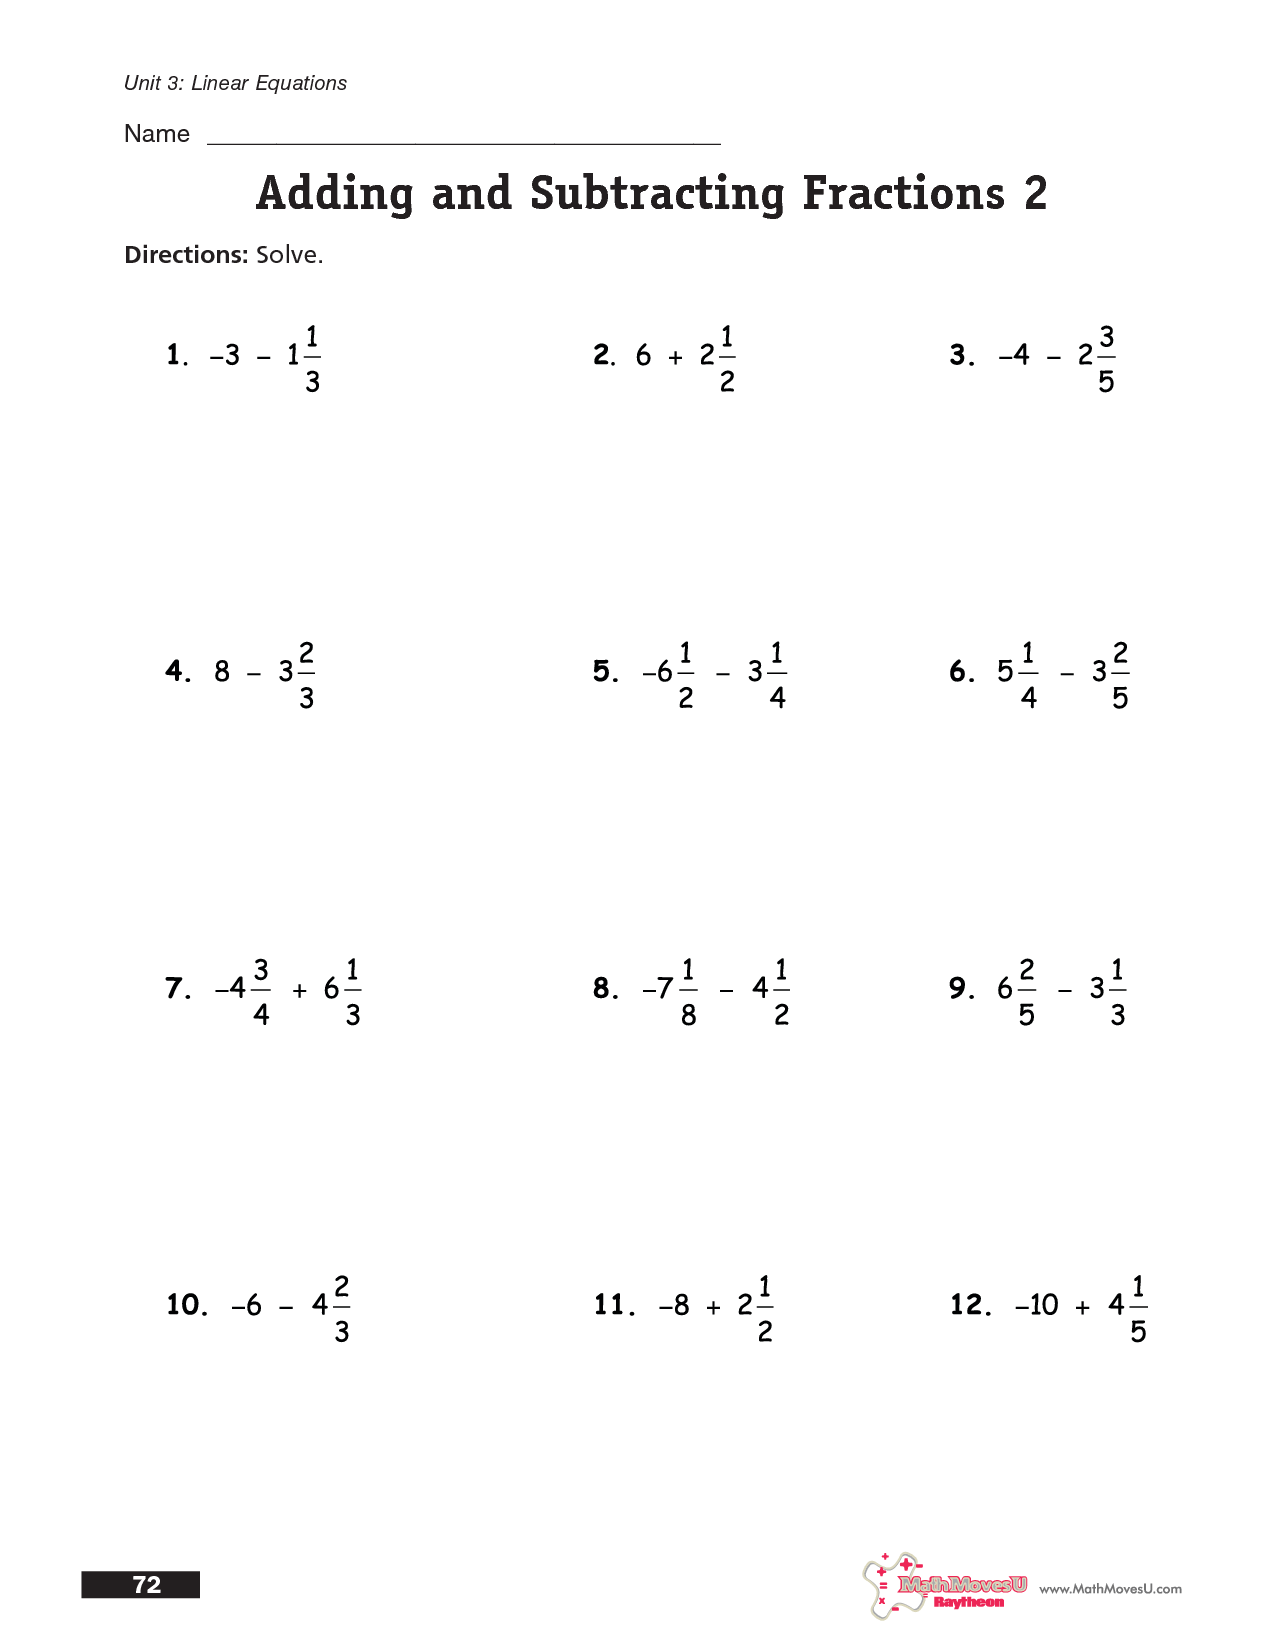 Adding And Subtracting Fractions Same Denominator